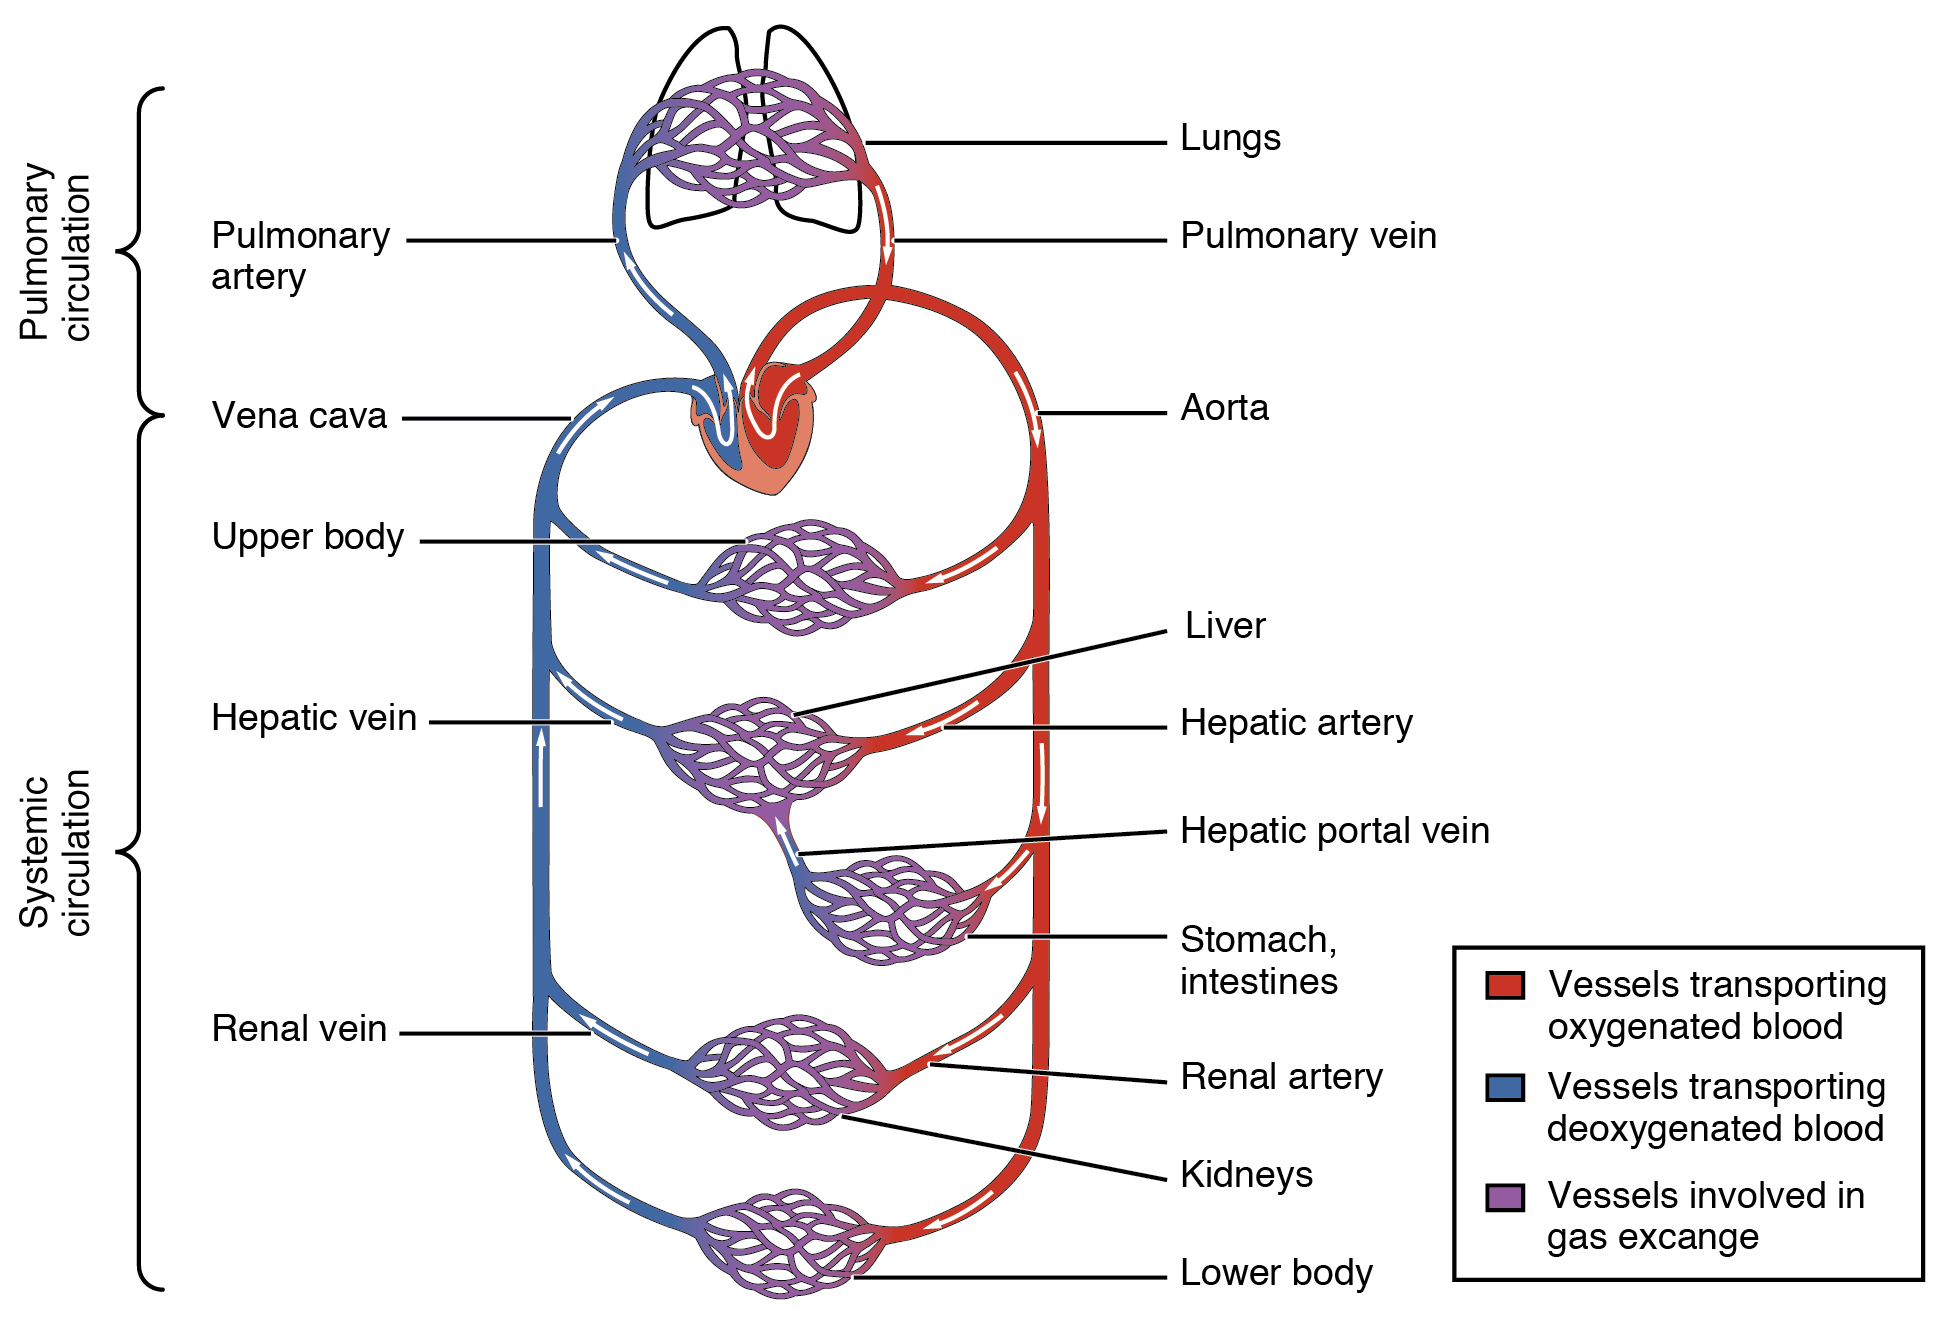 201 structure and function of blood vessels anatomy and physiology this diagram shows how oxygenated and deoxygenated blood flow through the major organs in the body ccuart Images